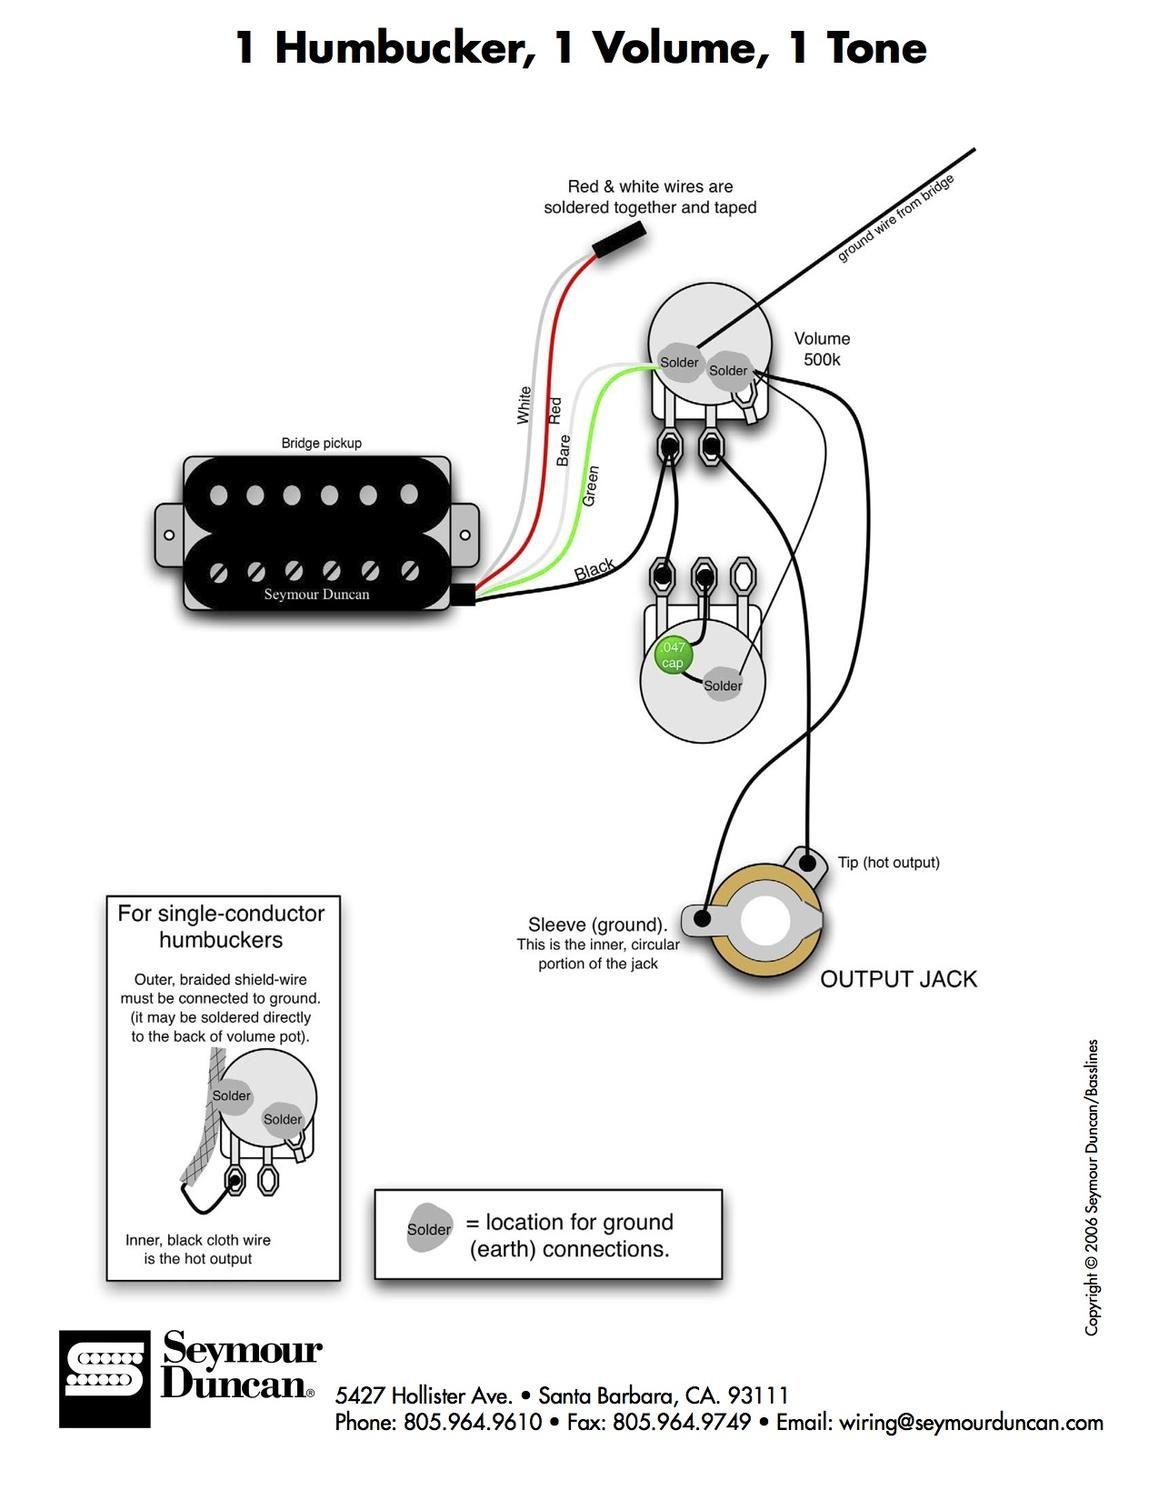 guitar wiring diagram 1 pickup wiring diagram loadguitar wiring diagrams 1 pickup wiring diagram week guitar [ 1159 x 1500 Pixel ]